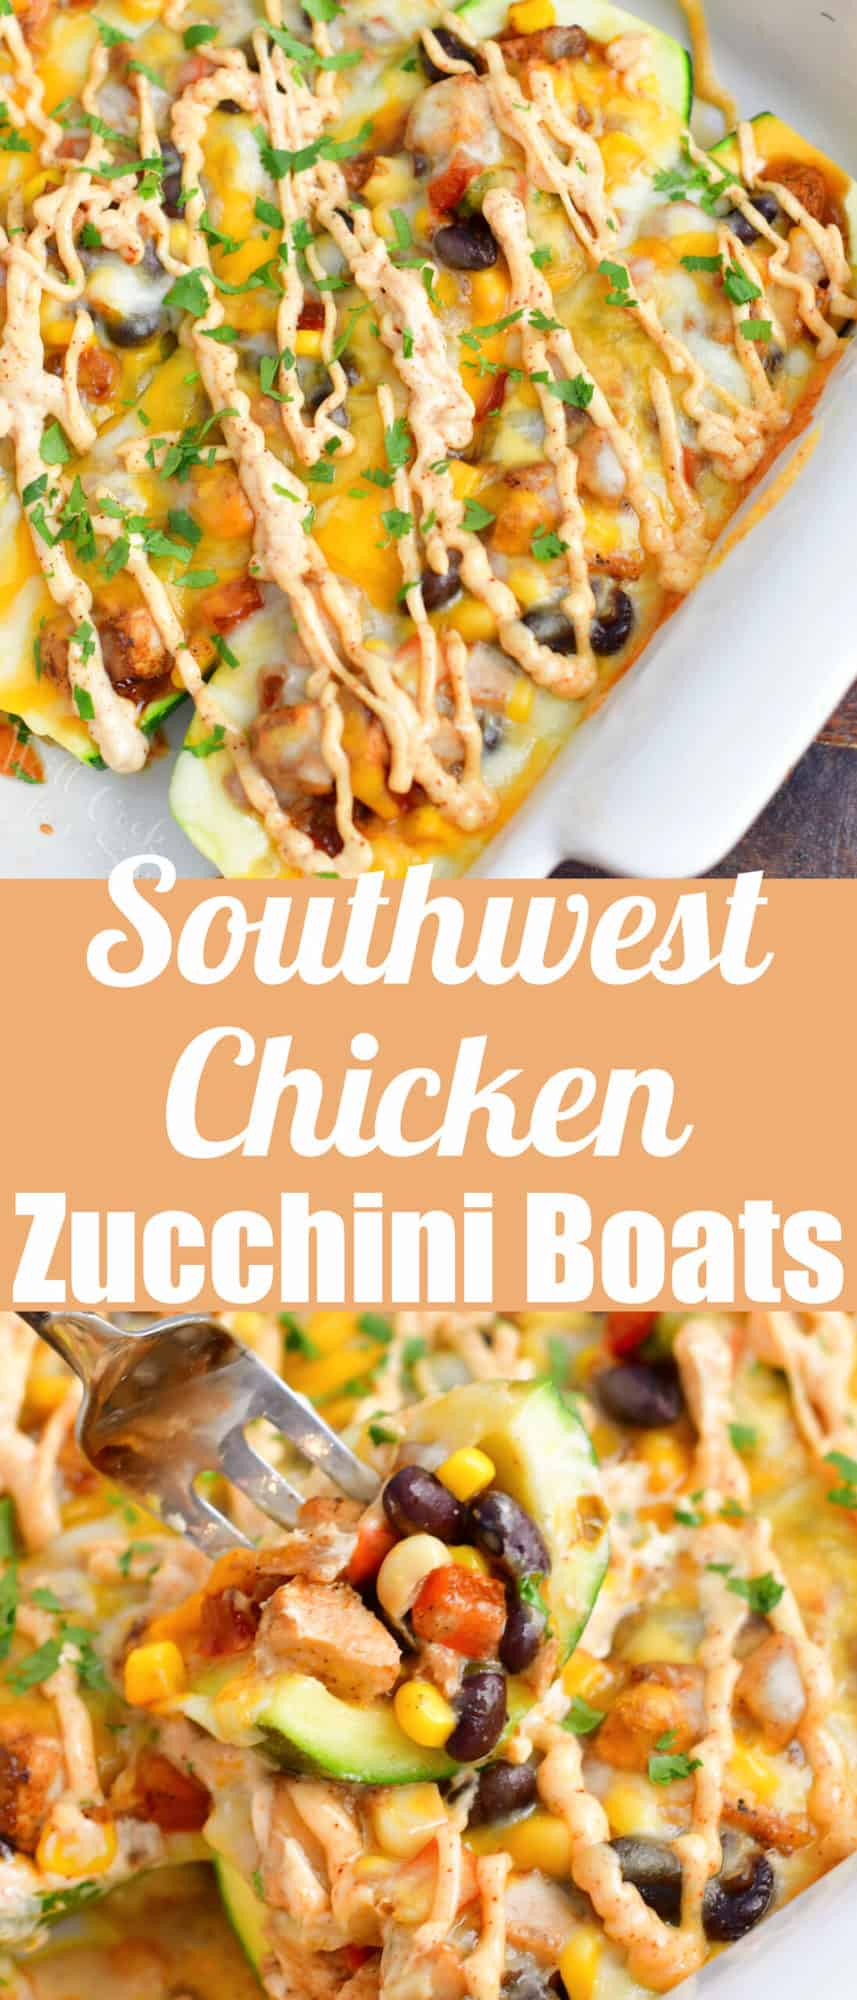 collage of two imags of zucchini boats in a baking dish and title